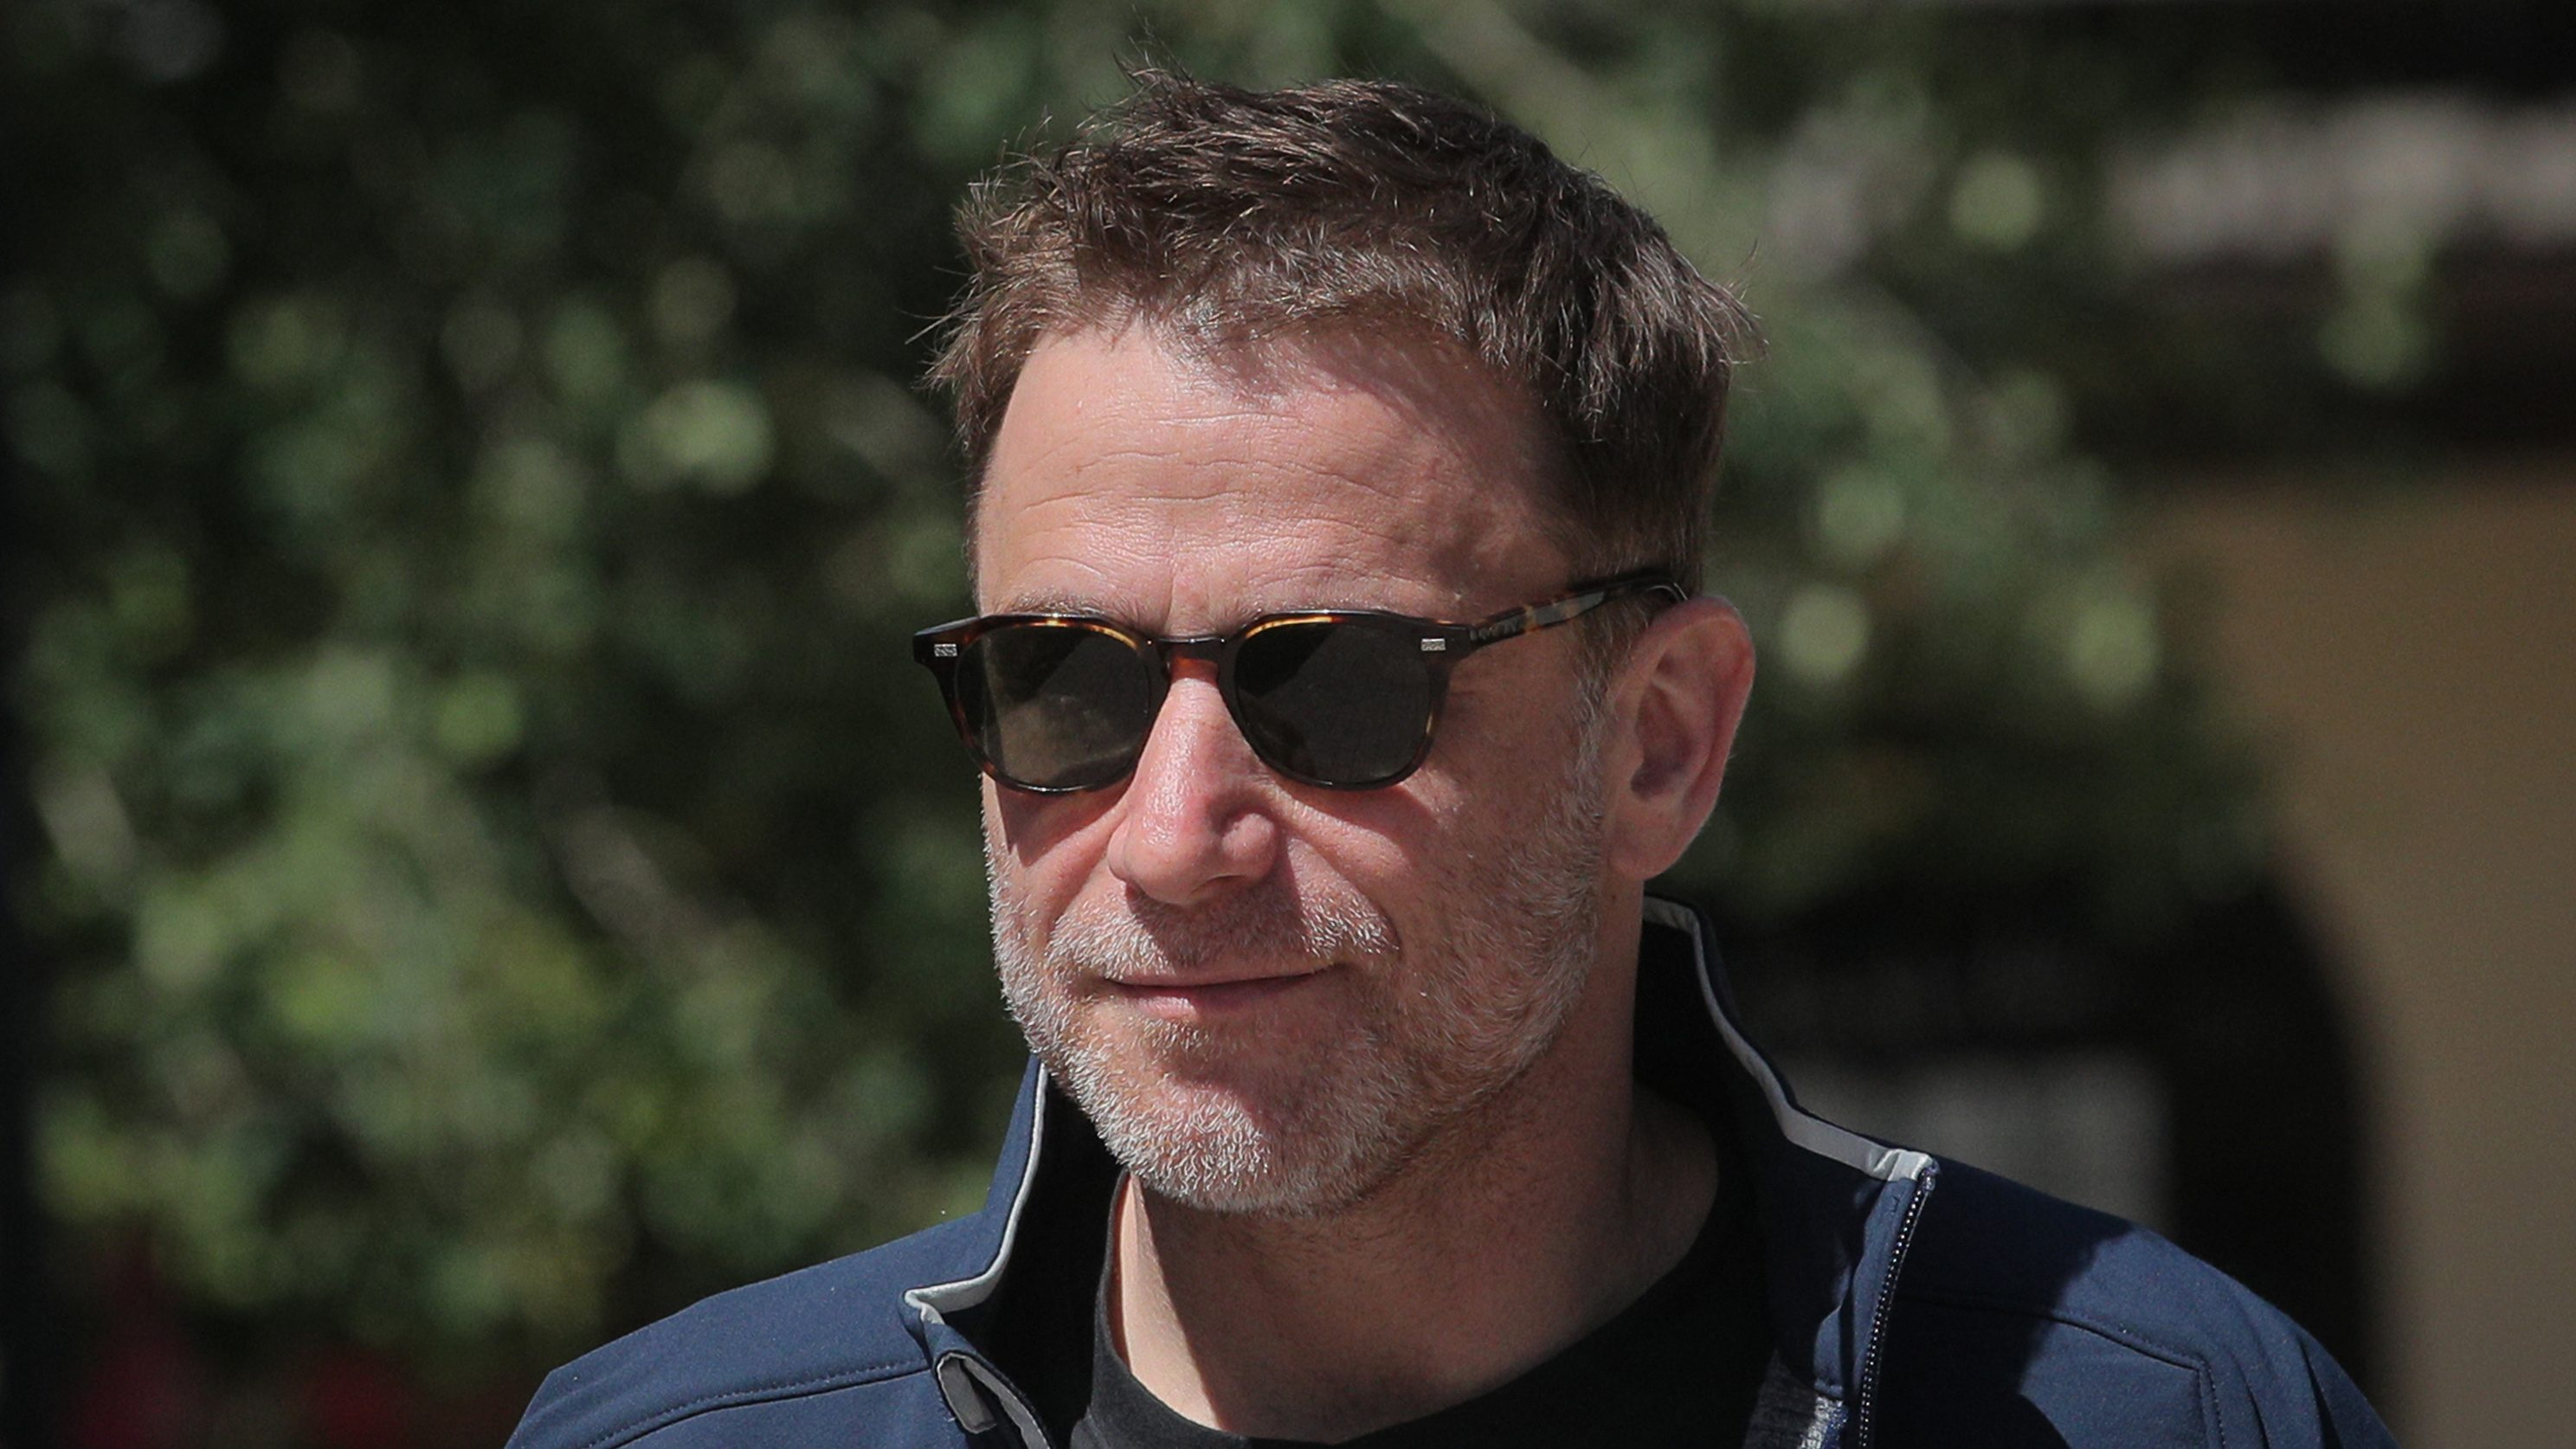 Stewart Butterfield wears sporty sunglasses and generally looks unconcerned.